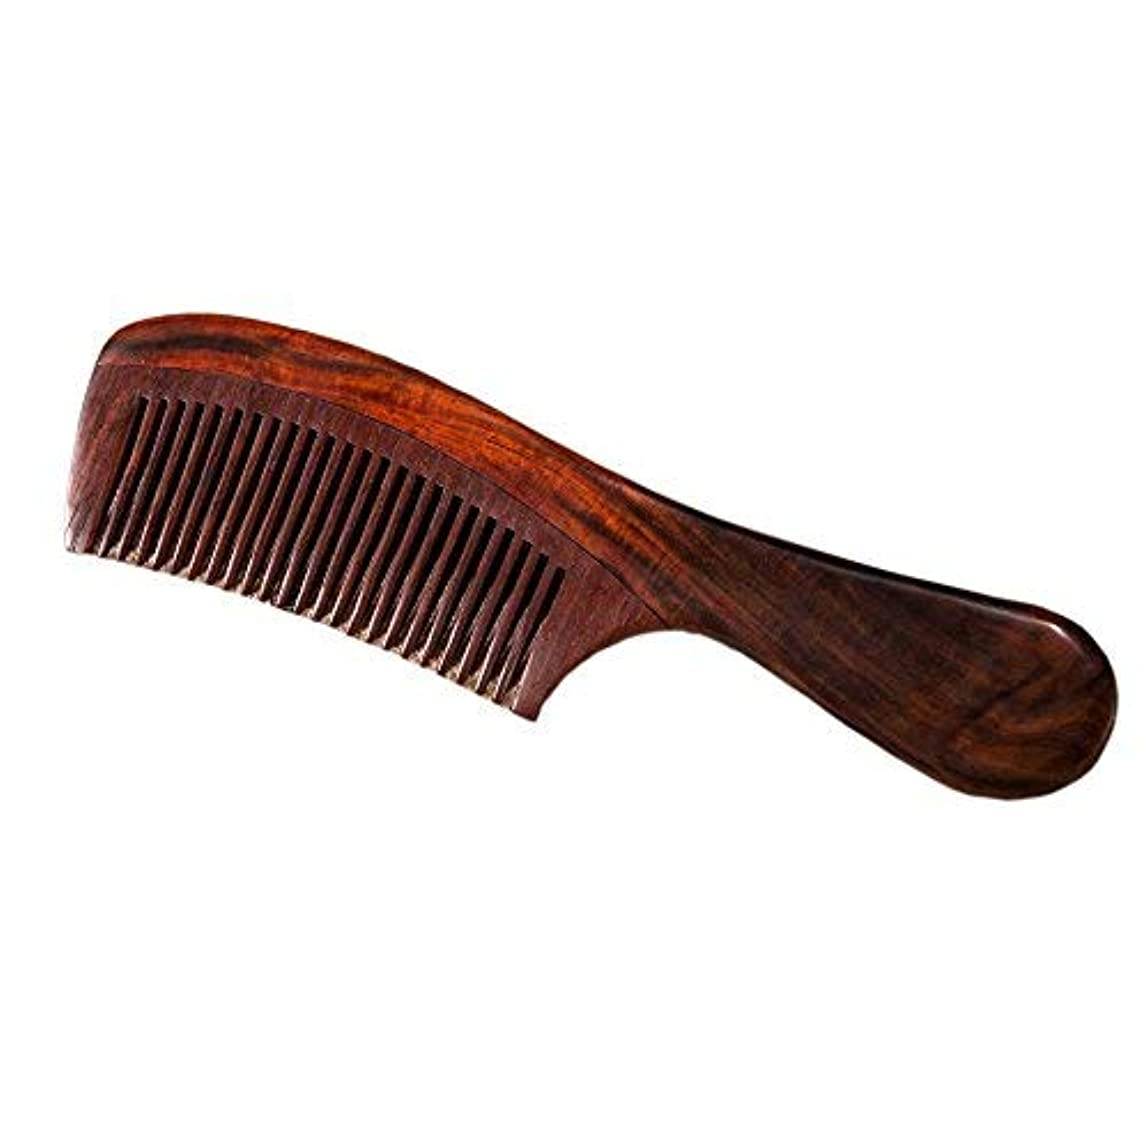 見てどうやってパブNatural Redwood Hair Comb, No Static Handmade Medium Tooth Hair Comb, Smooth and Comfortable Message Wood Comb...